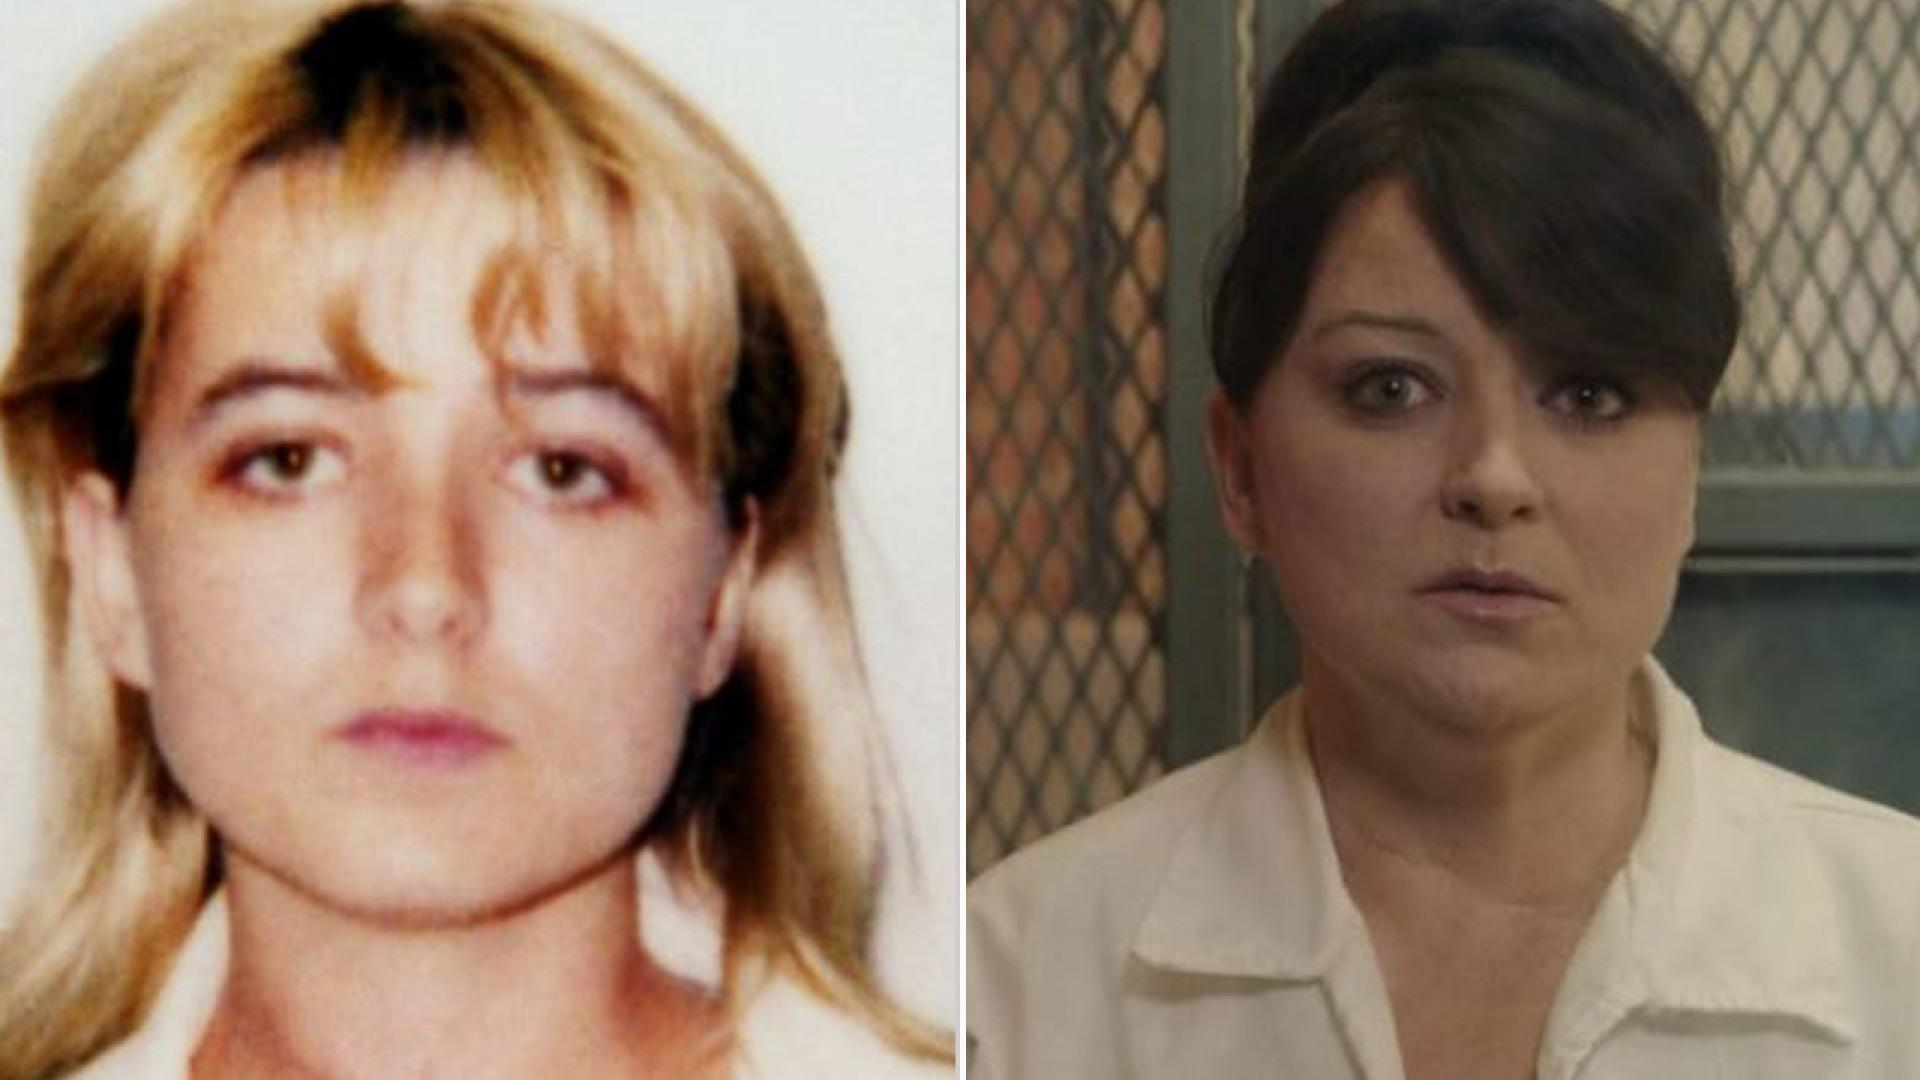 Darlie Routier is the subject of '20/20' documentary airing Friday.